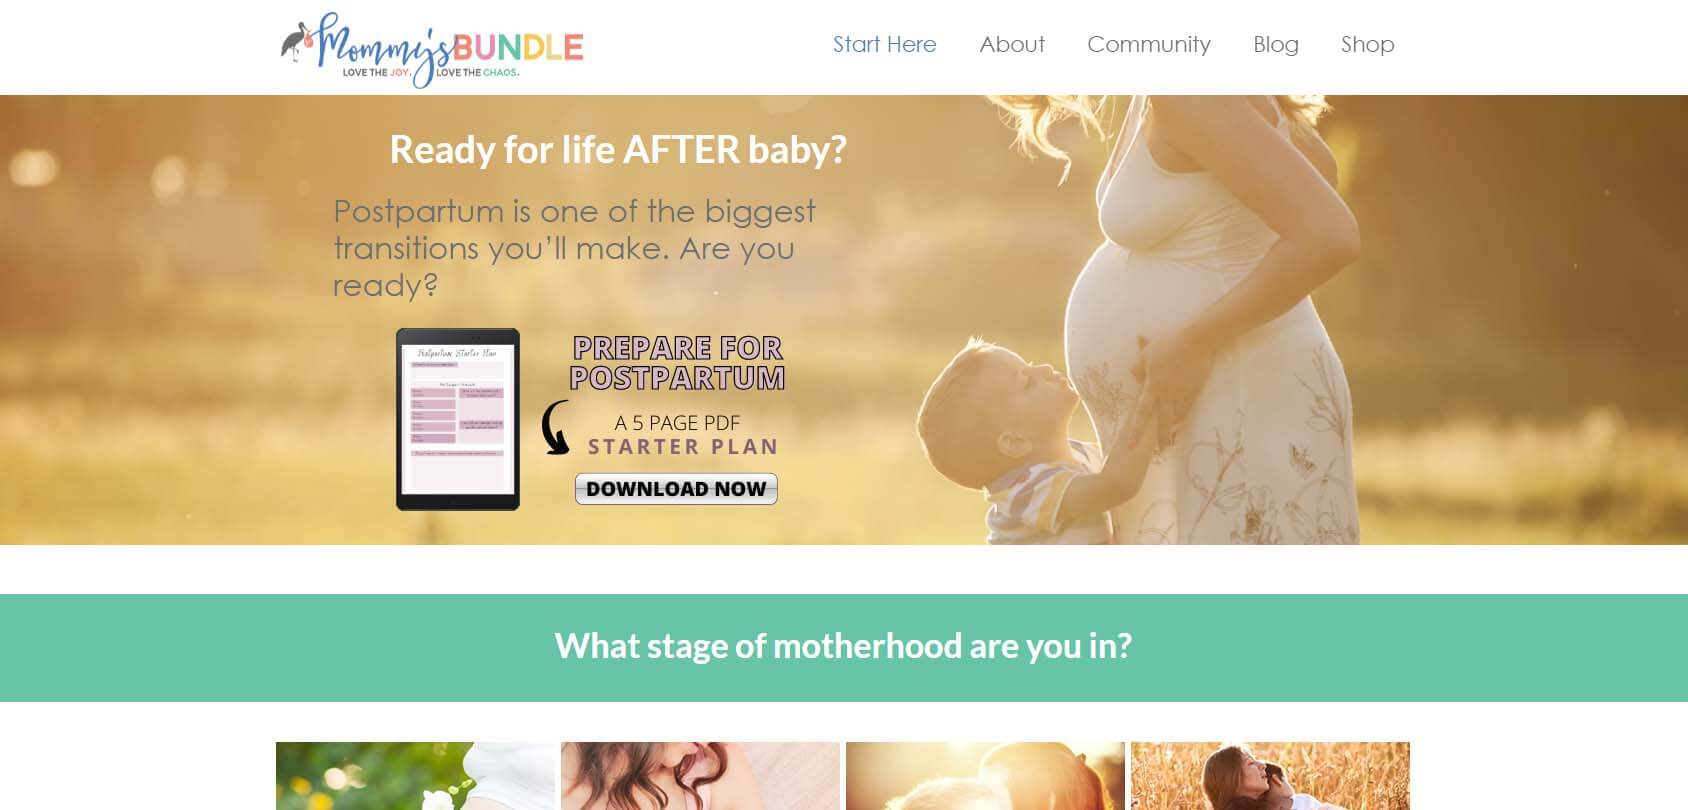 Mommy's Bundle Homepage